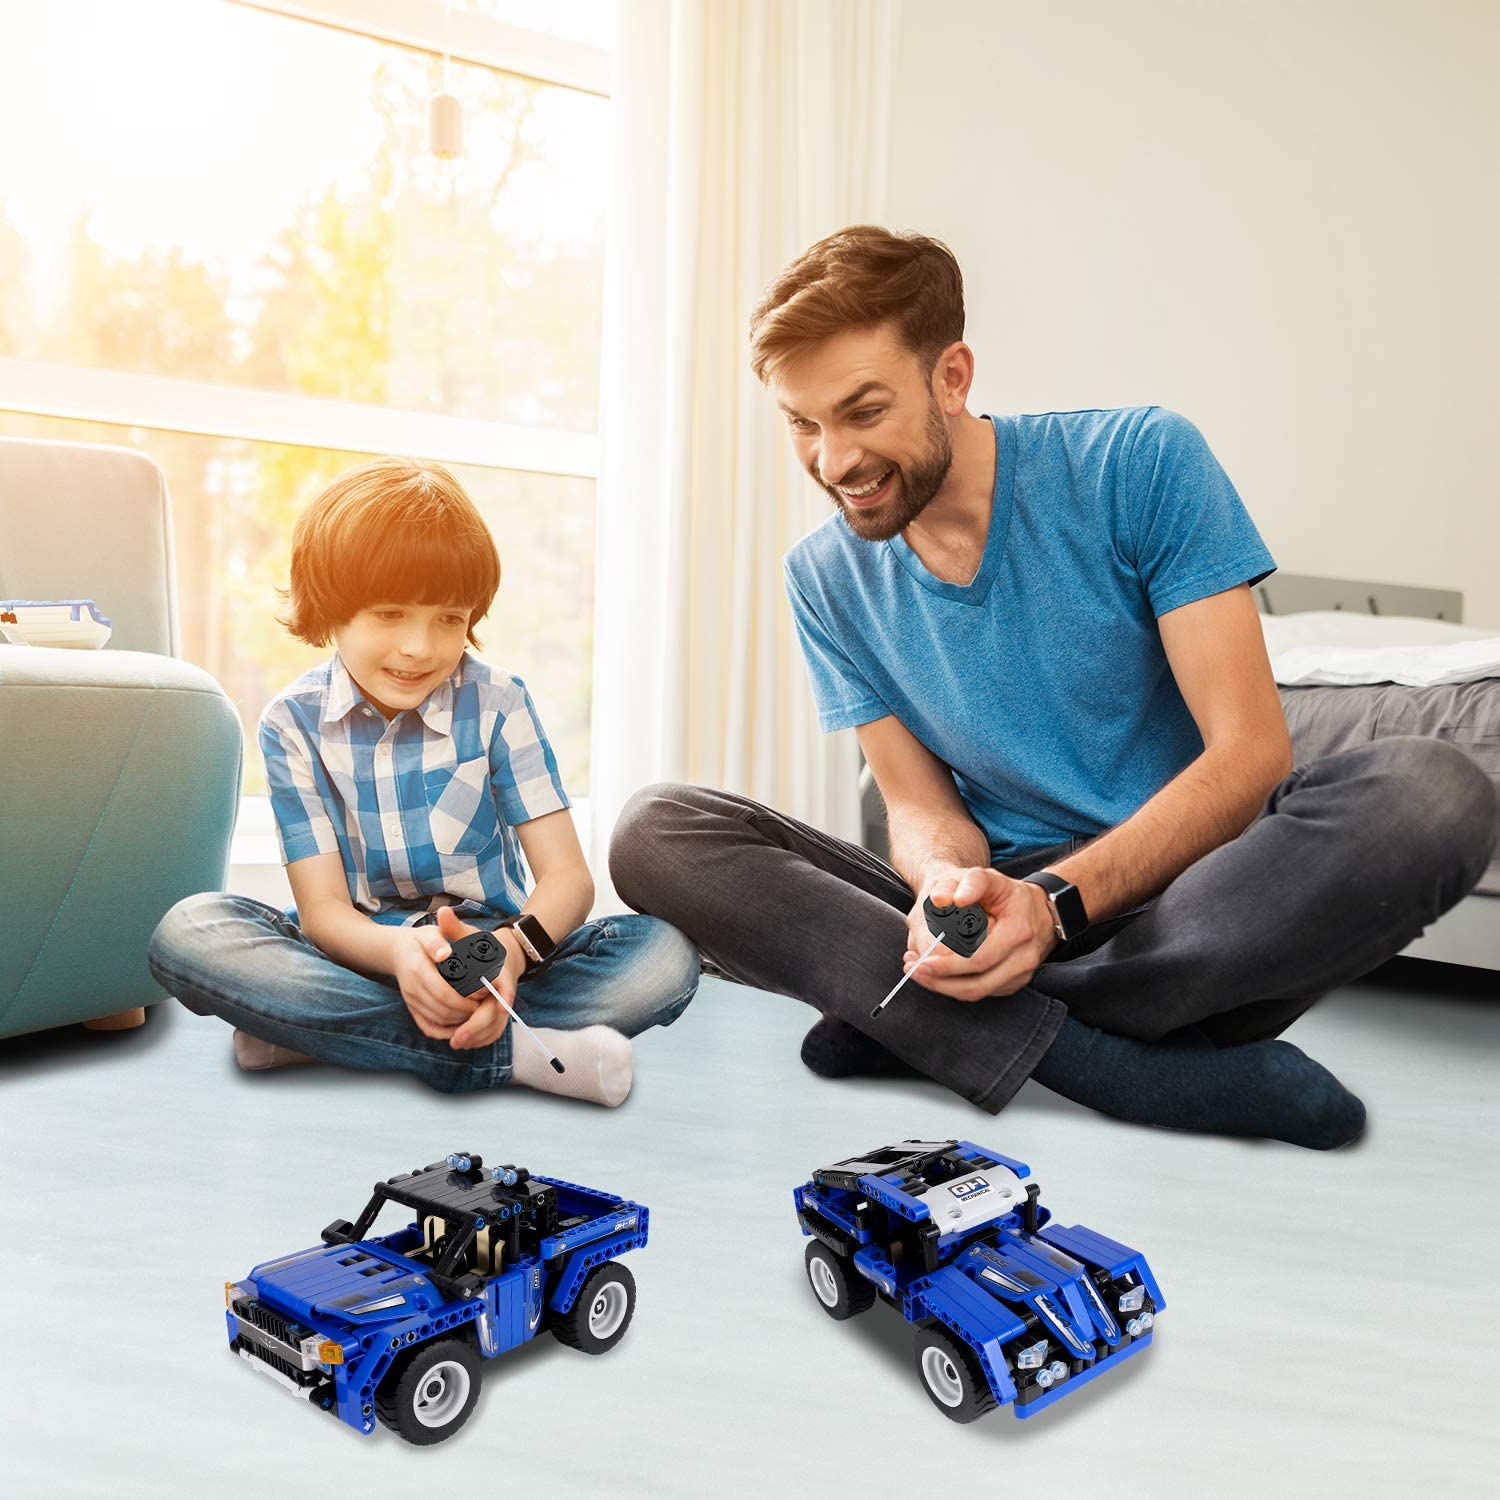 440 PCS TongLi 6605 Kids Toy for Girls and Boys Age 345678 Indoor Boys Gifts Creative Electric Toy Glowing Race Track Slot Car Race Tracks Set for Boys with LED Light